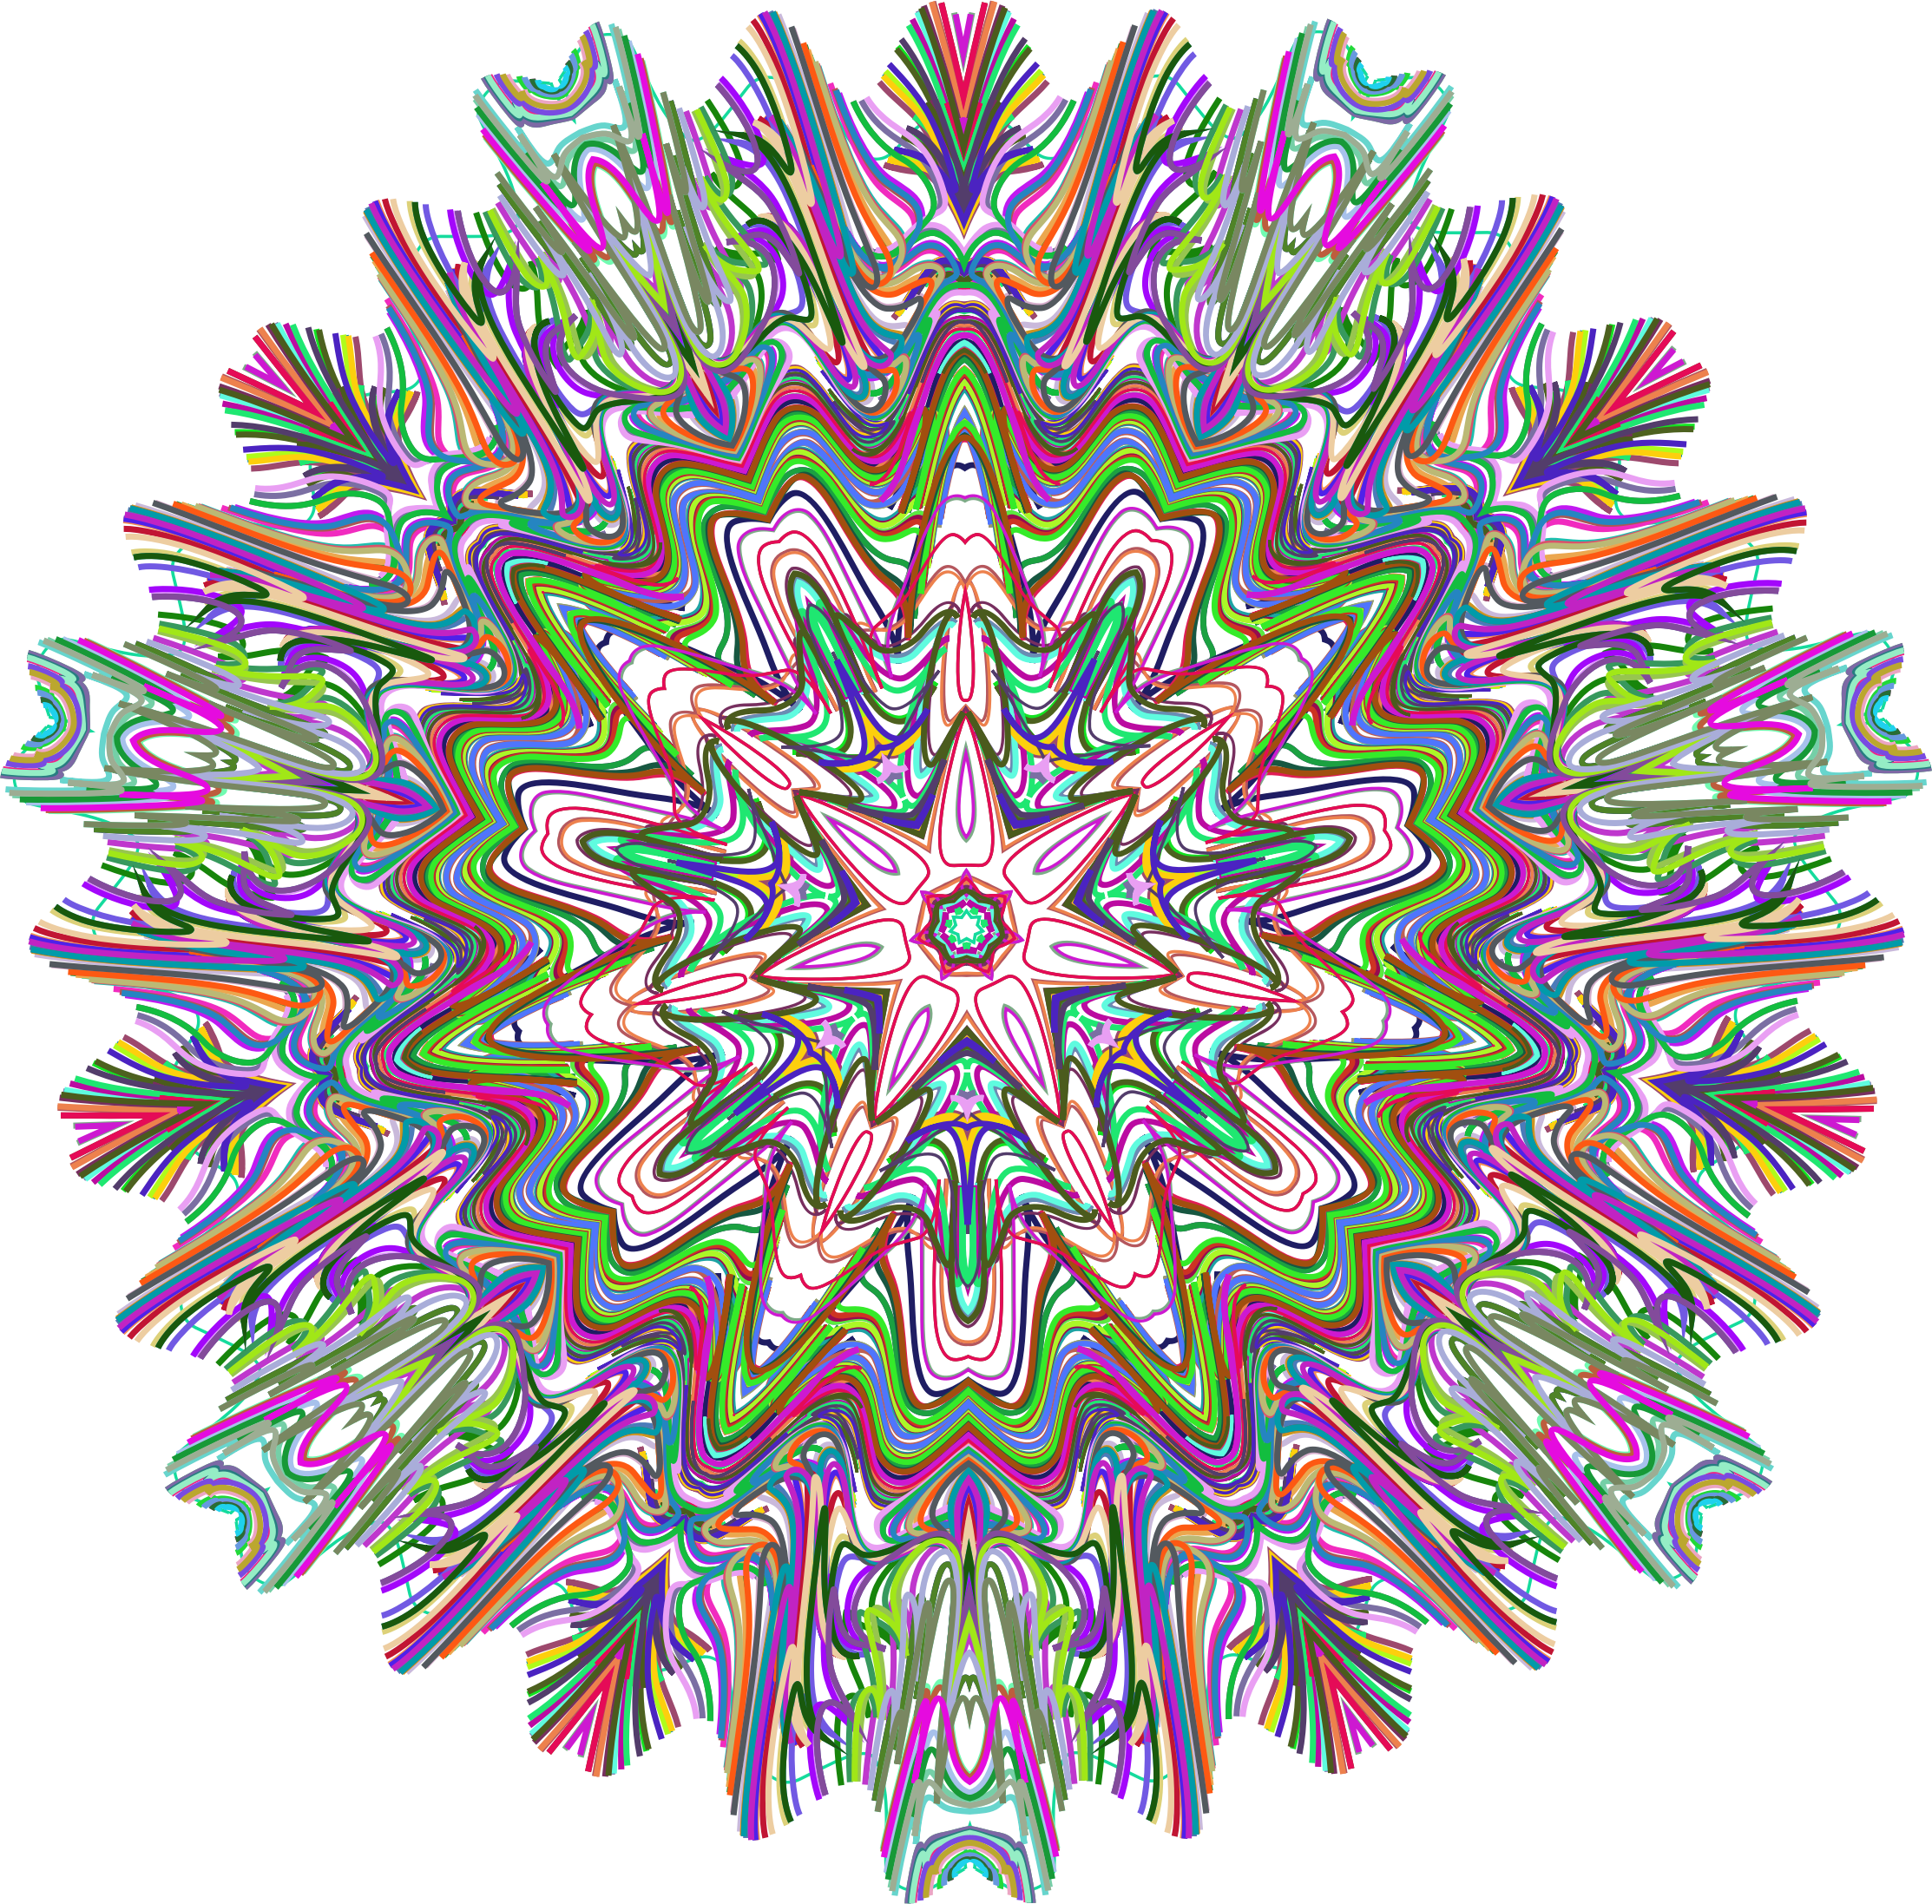 Line Art No Background : Clipart prismatic line art mandala no background